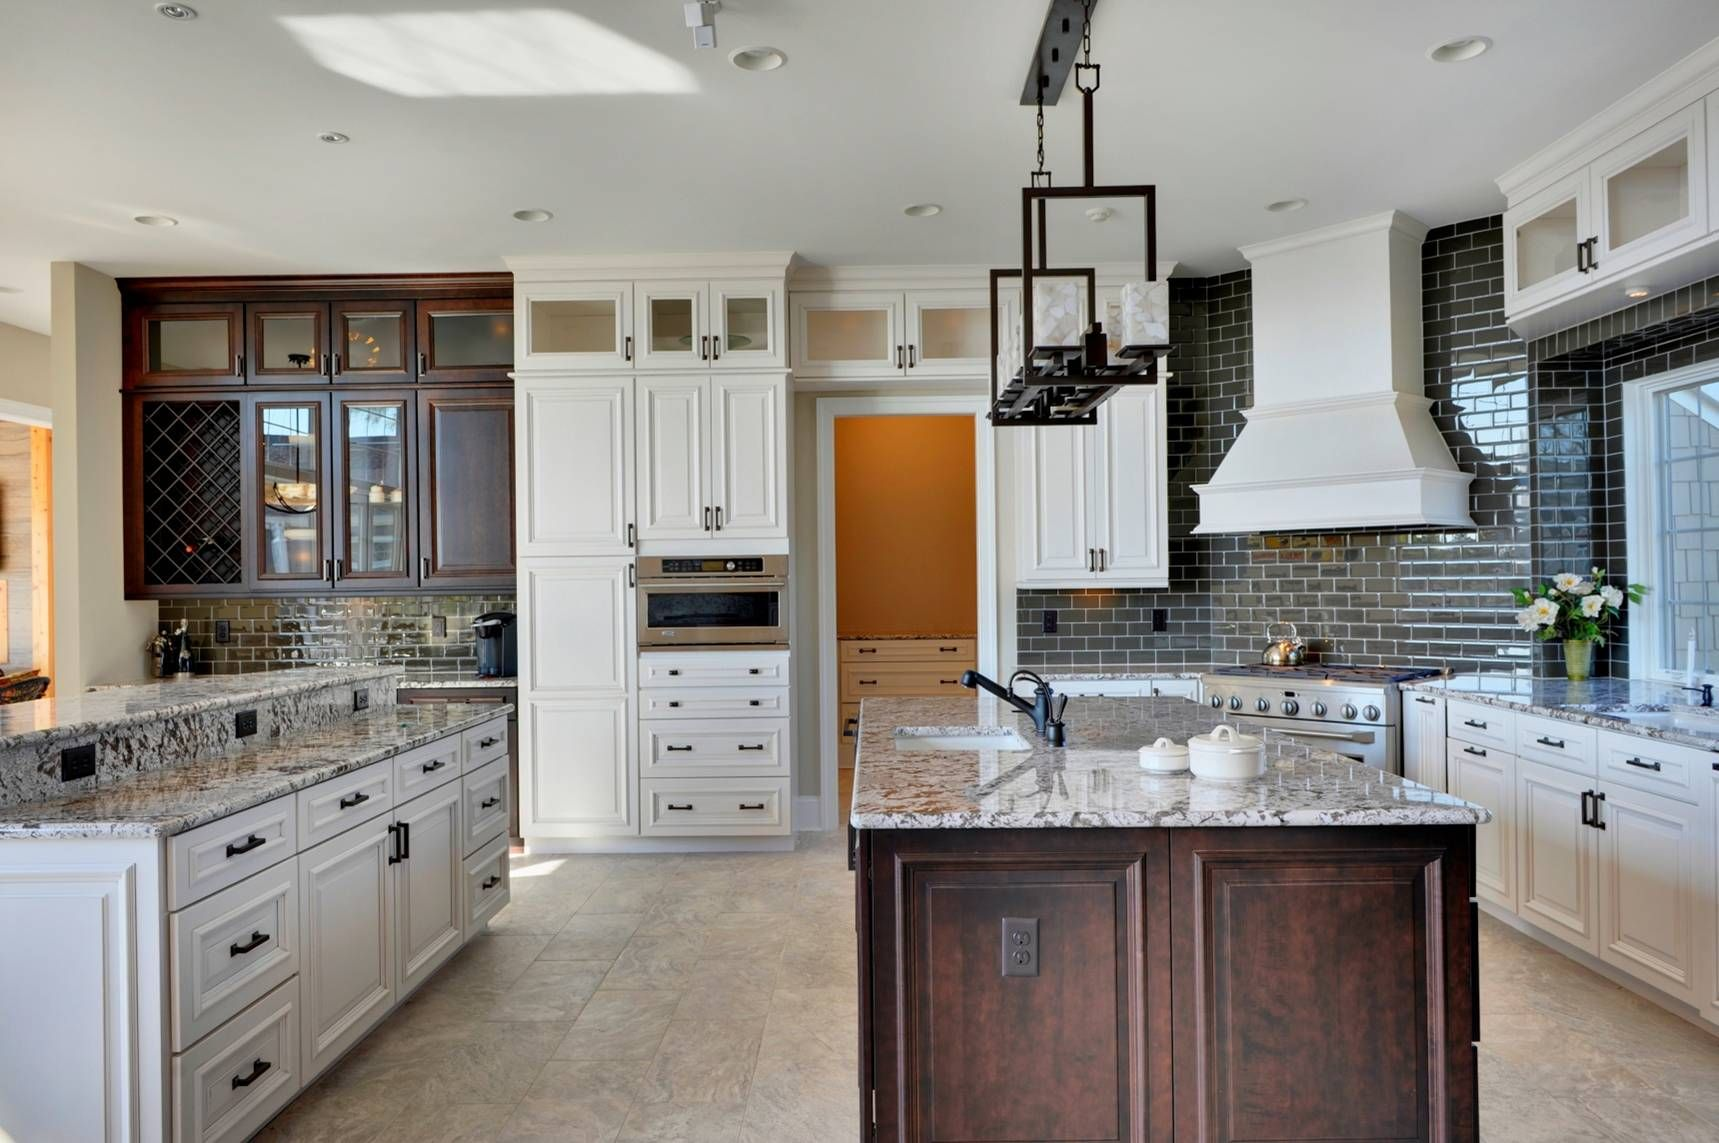 Image result for adding cabinets above existing cabinets | painting ...